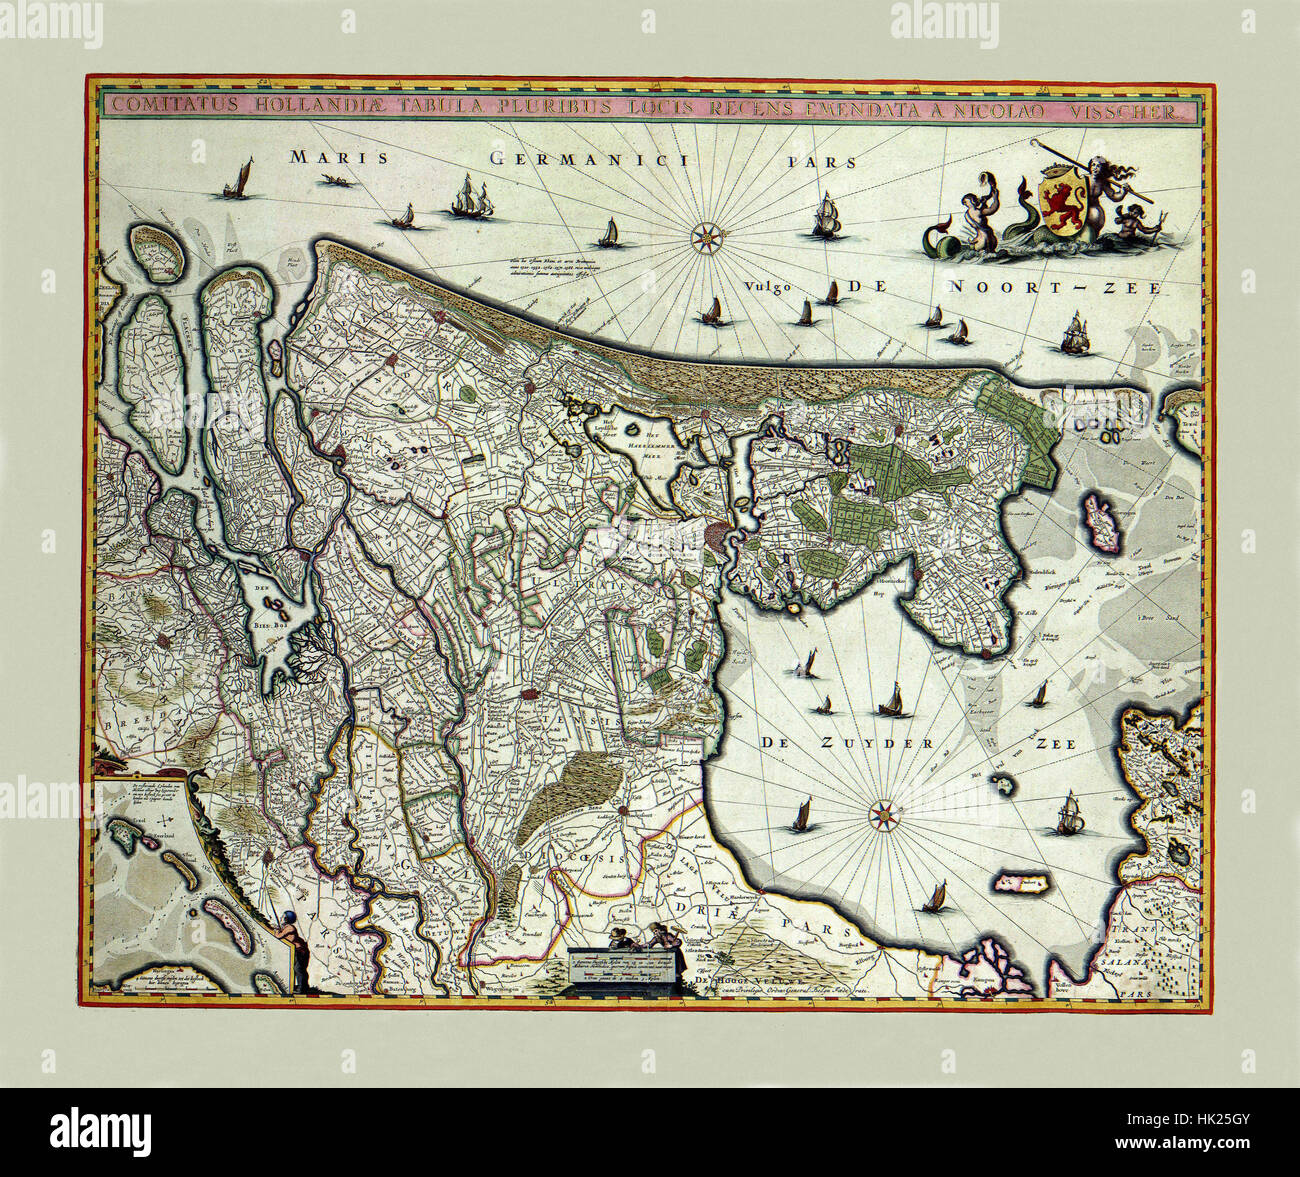 Map Of Holland 1682 - Stock Image